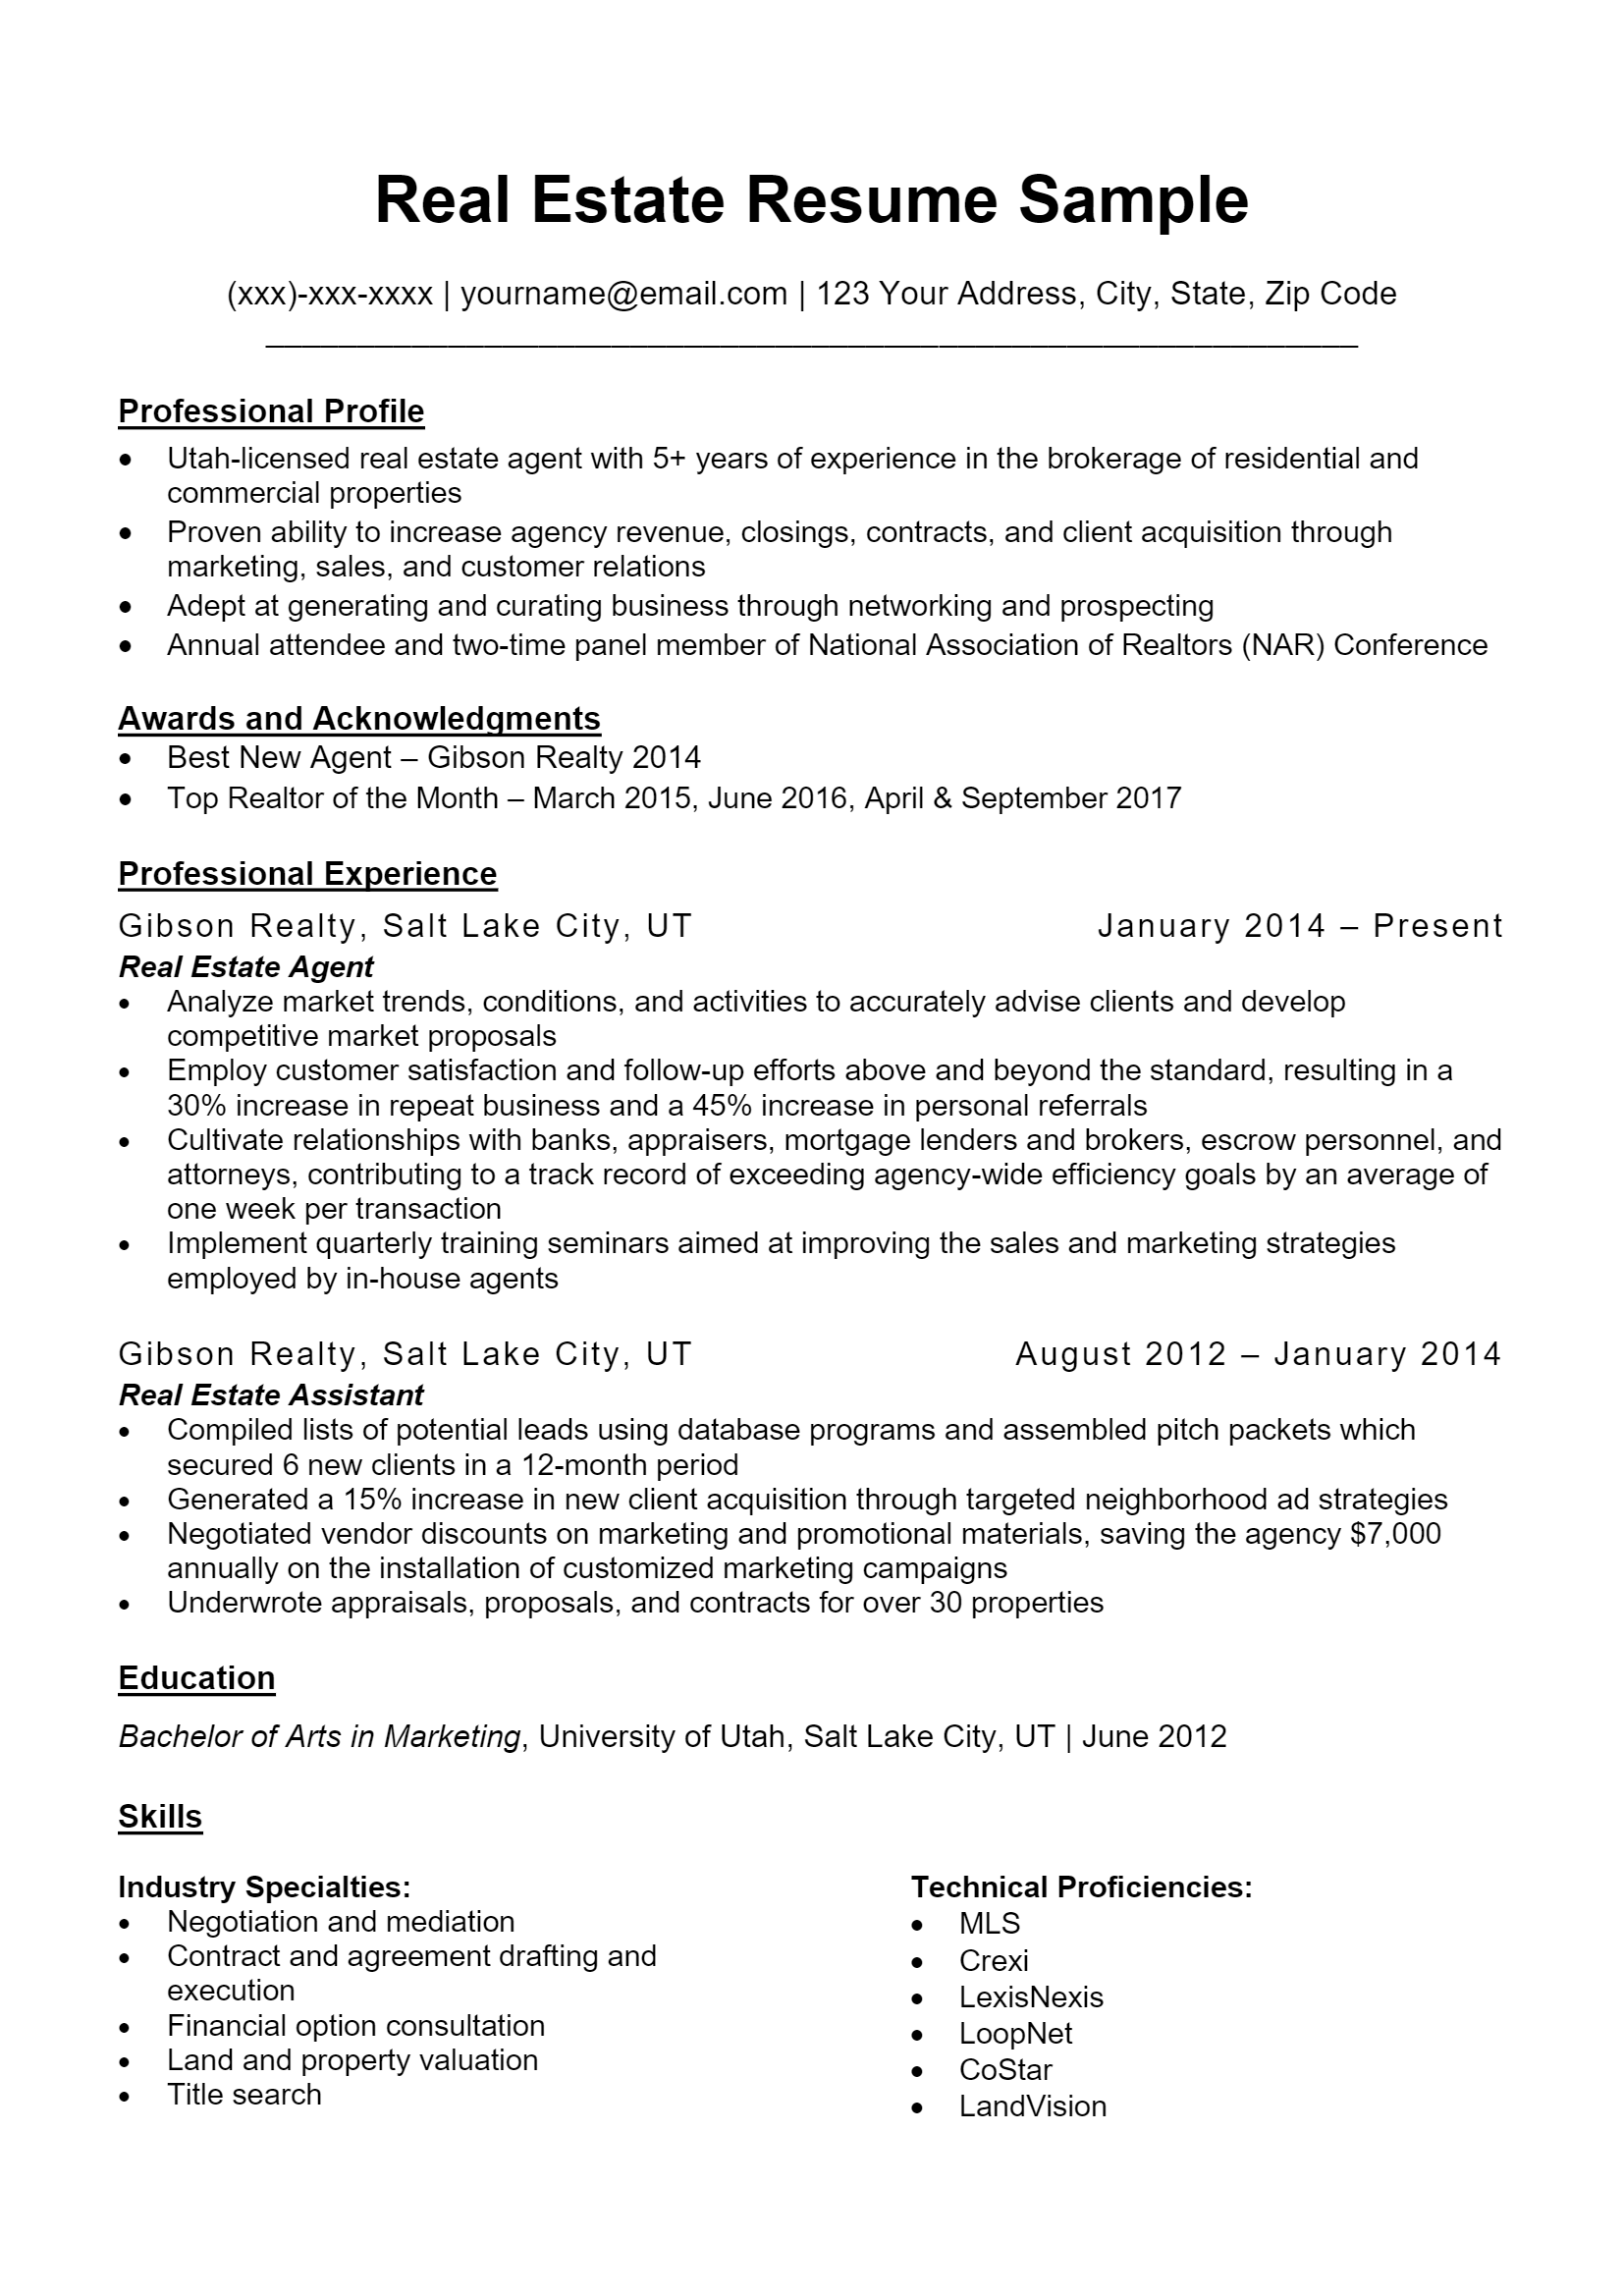 Real Estate Agent Resume > Real Estate Agent Resume .Docx (Word)